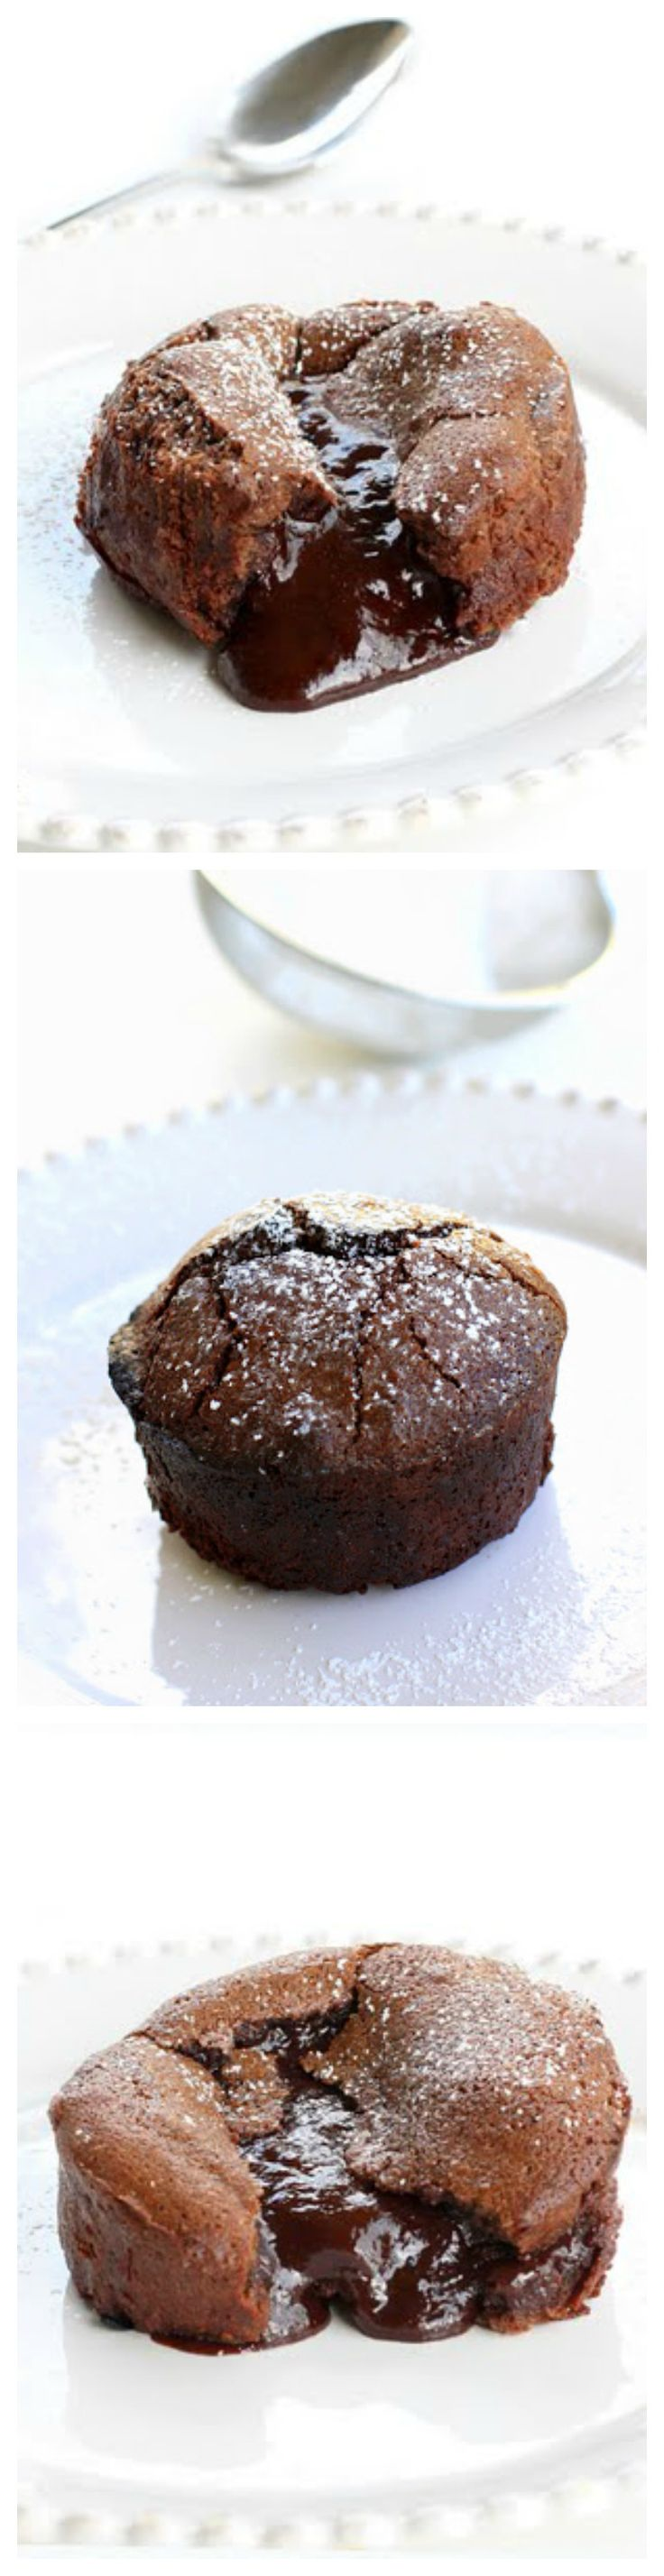 Roy's Chocolate Souffle - also called lava cakes. Rich and decadent. I ate 3 in one sitting. the-girl-who-ate-everything.com